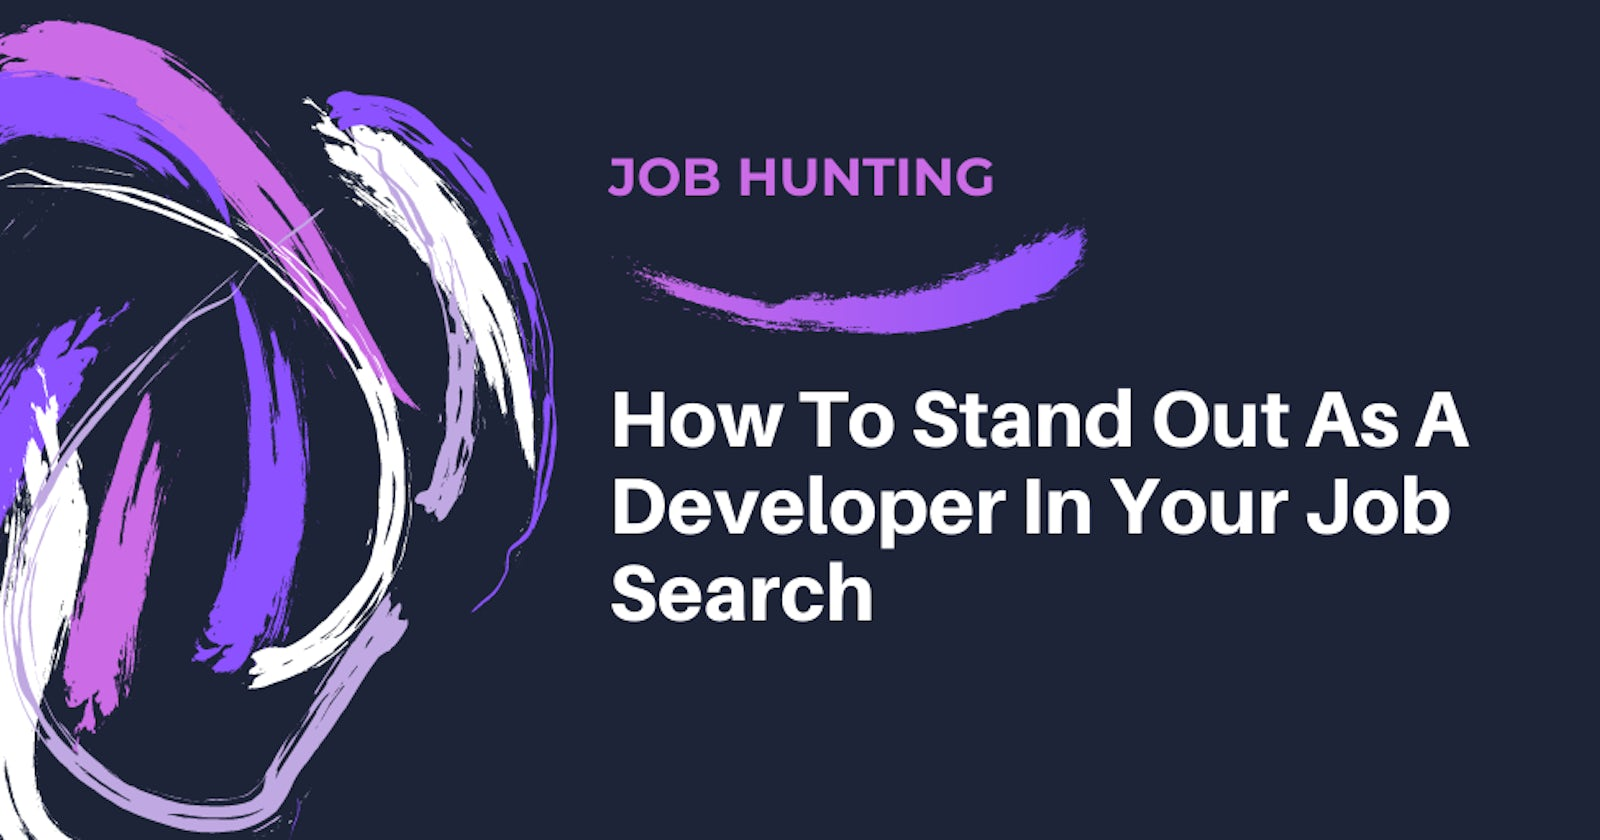 How To Stand Out As A Developer In Your Job Search